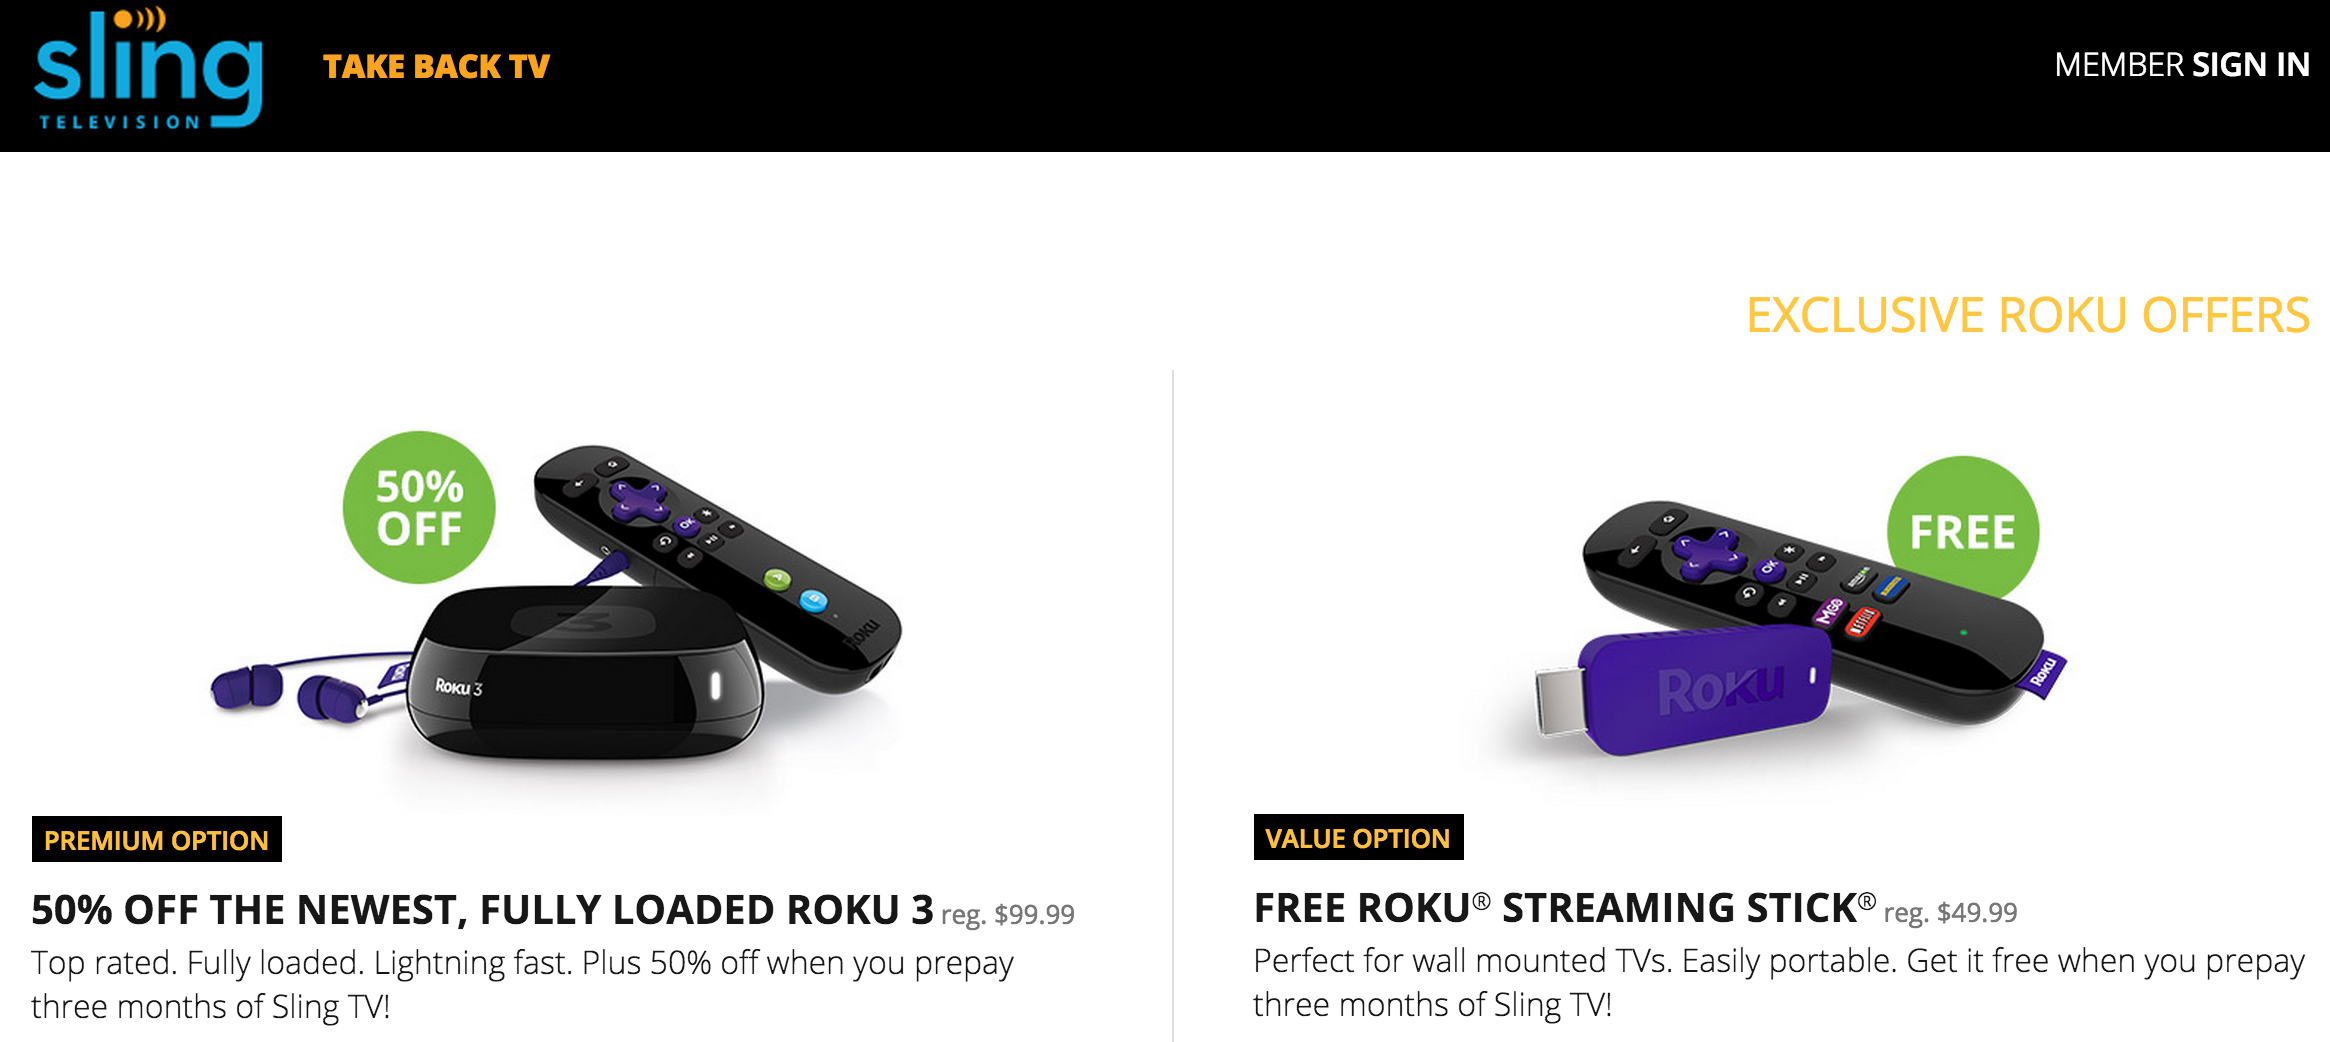 Free Amazon, Roku Streaming Devices If You Prepay For 3 Months Of